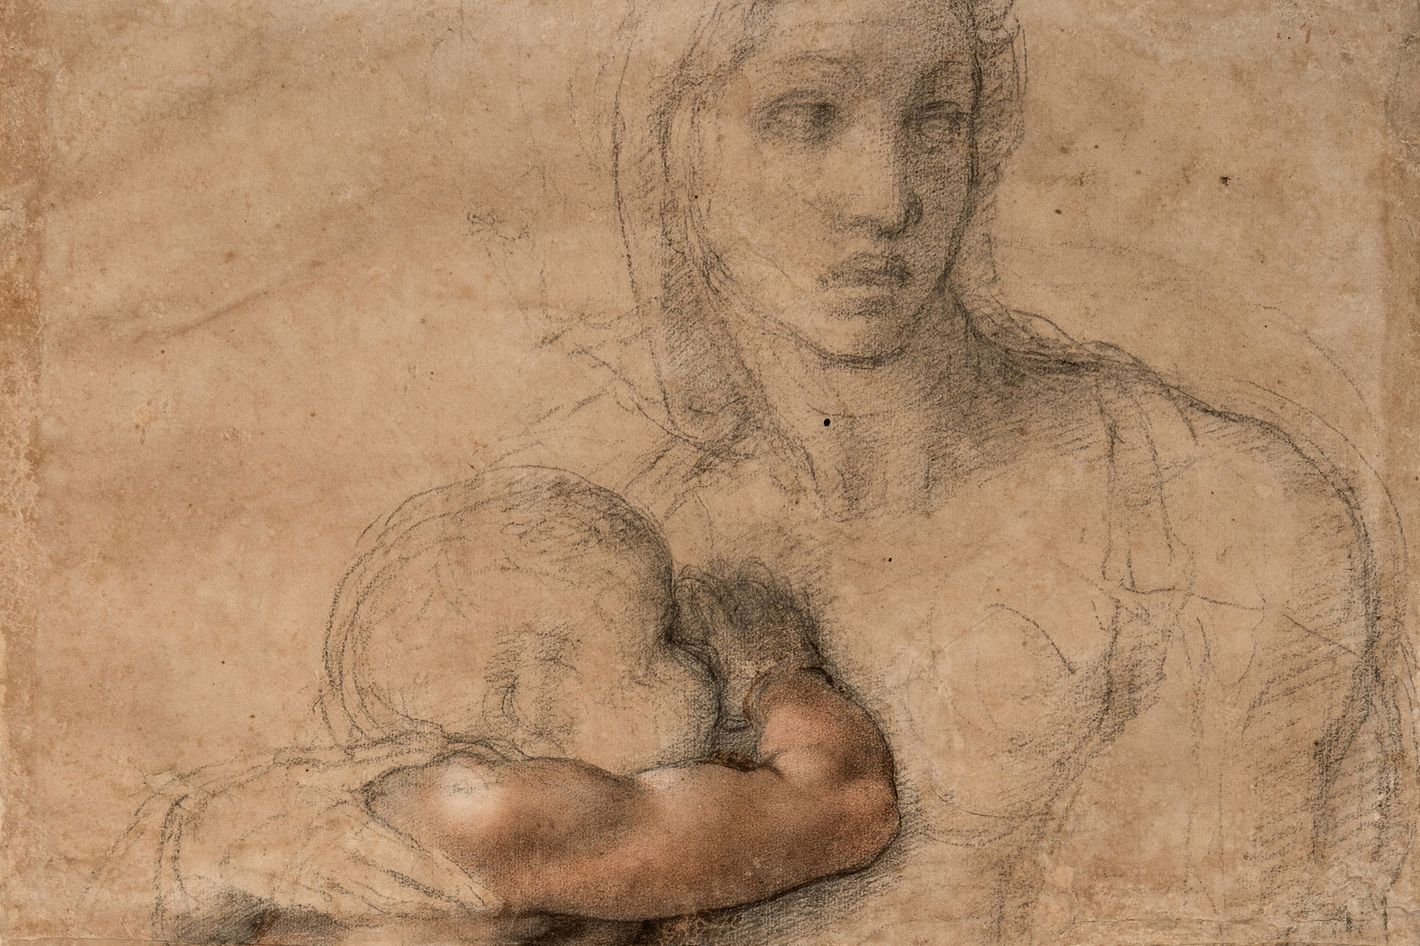 Michelangelo exploded art history just with his drawing